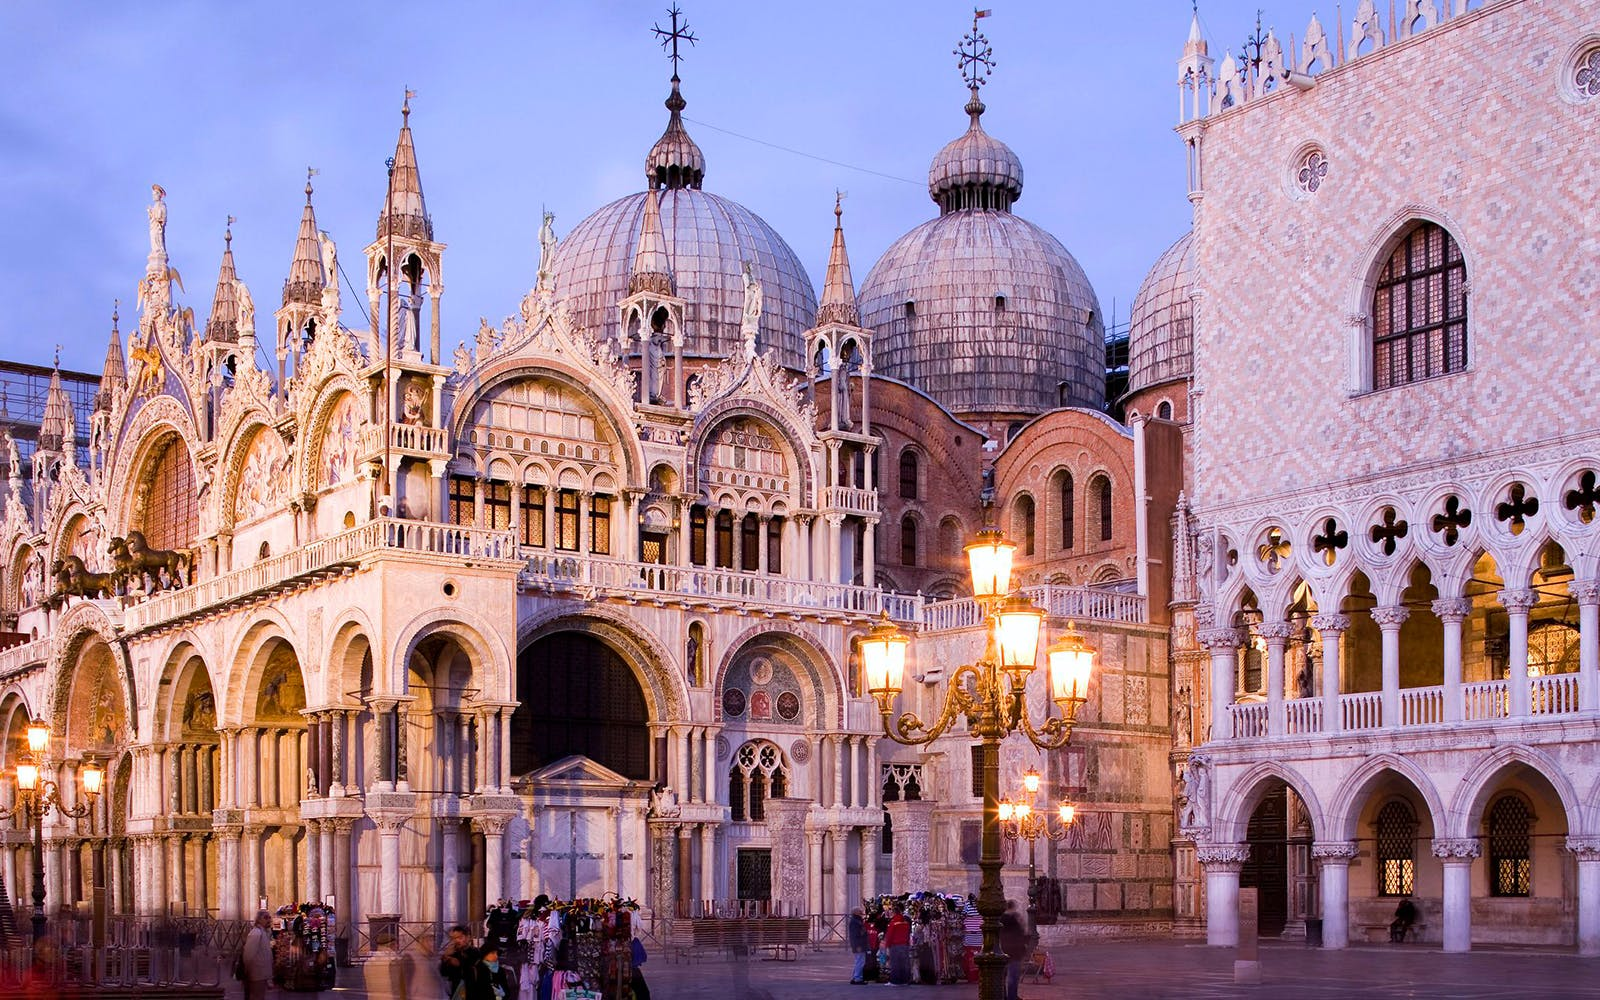 skip the line: guided tour of st. mark's basilica & doge's palace + the royal pa-1